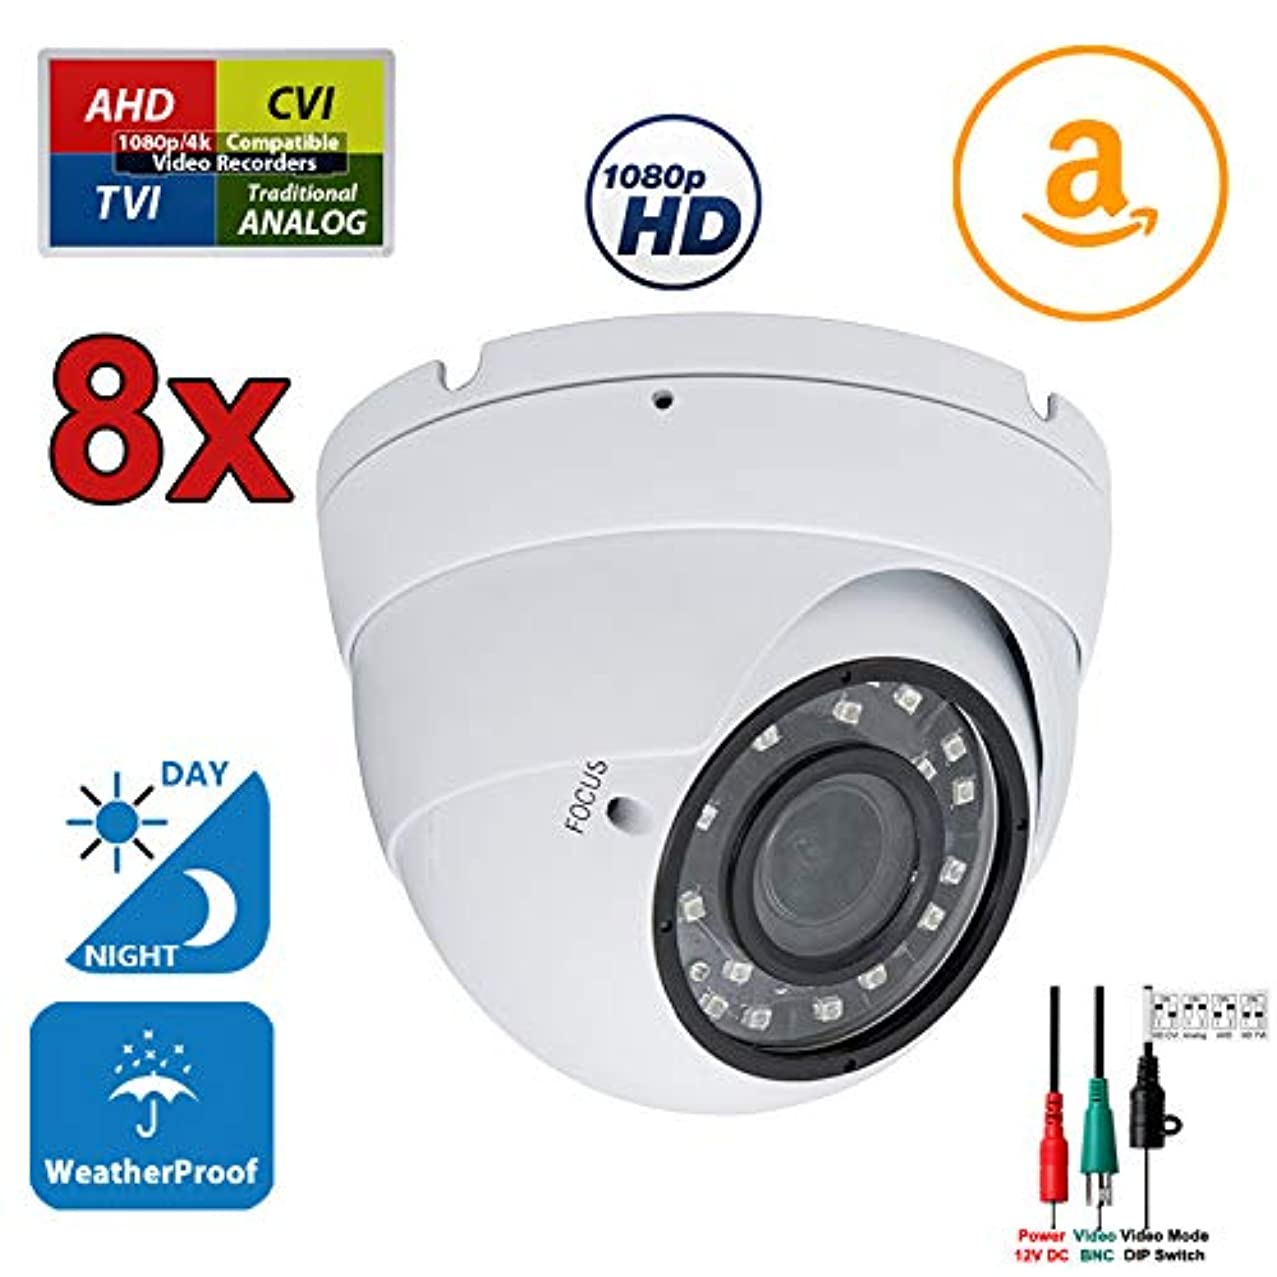 Evertech 8 pcs 1080p HD AHD TVI CVI and Traditional Analog Security Camera with 2.8-12mm Varifocal Zoom Lens, Day & Night, Indoor & Outdoor Dome Surveillance Camera